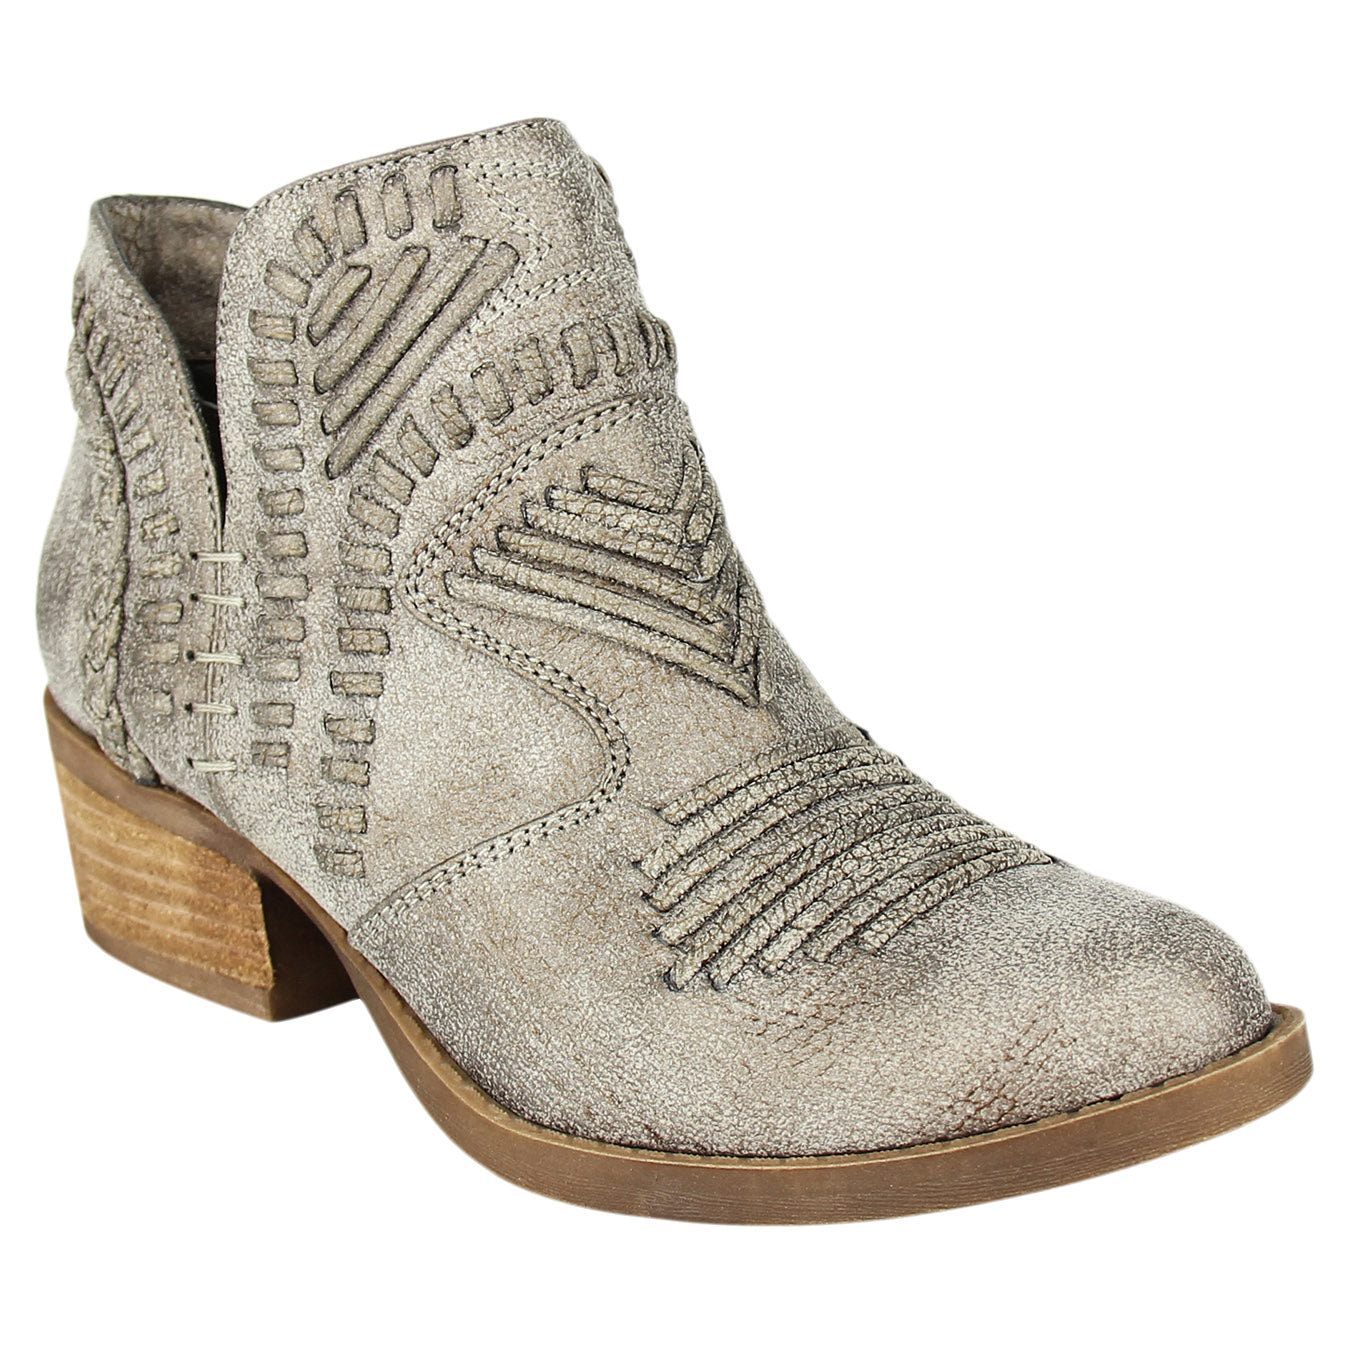 Not_Rated_bootie_grey_stacked_heel_women's_woven_upper_Nosara_best_seller